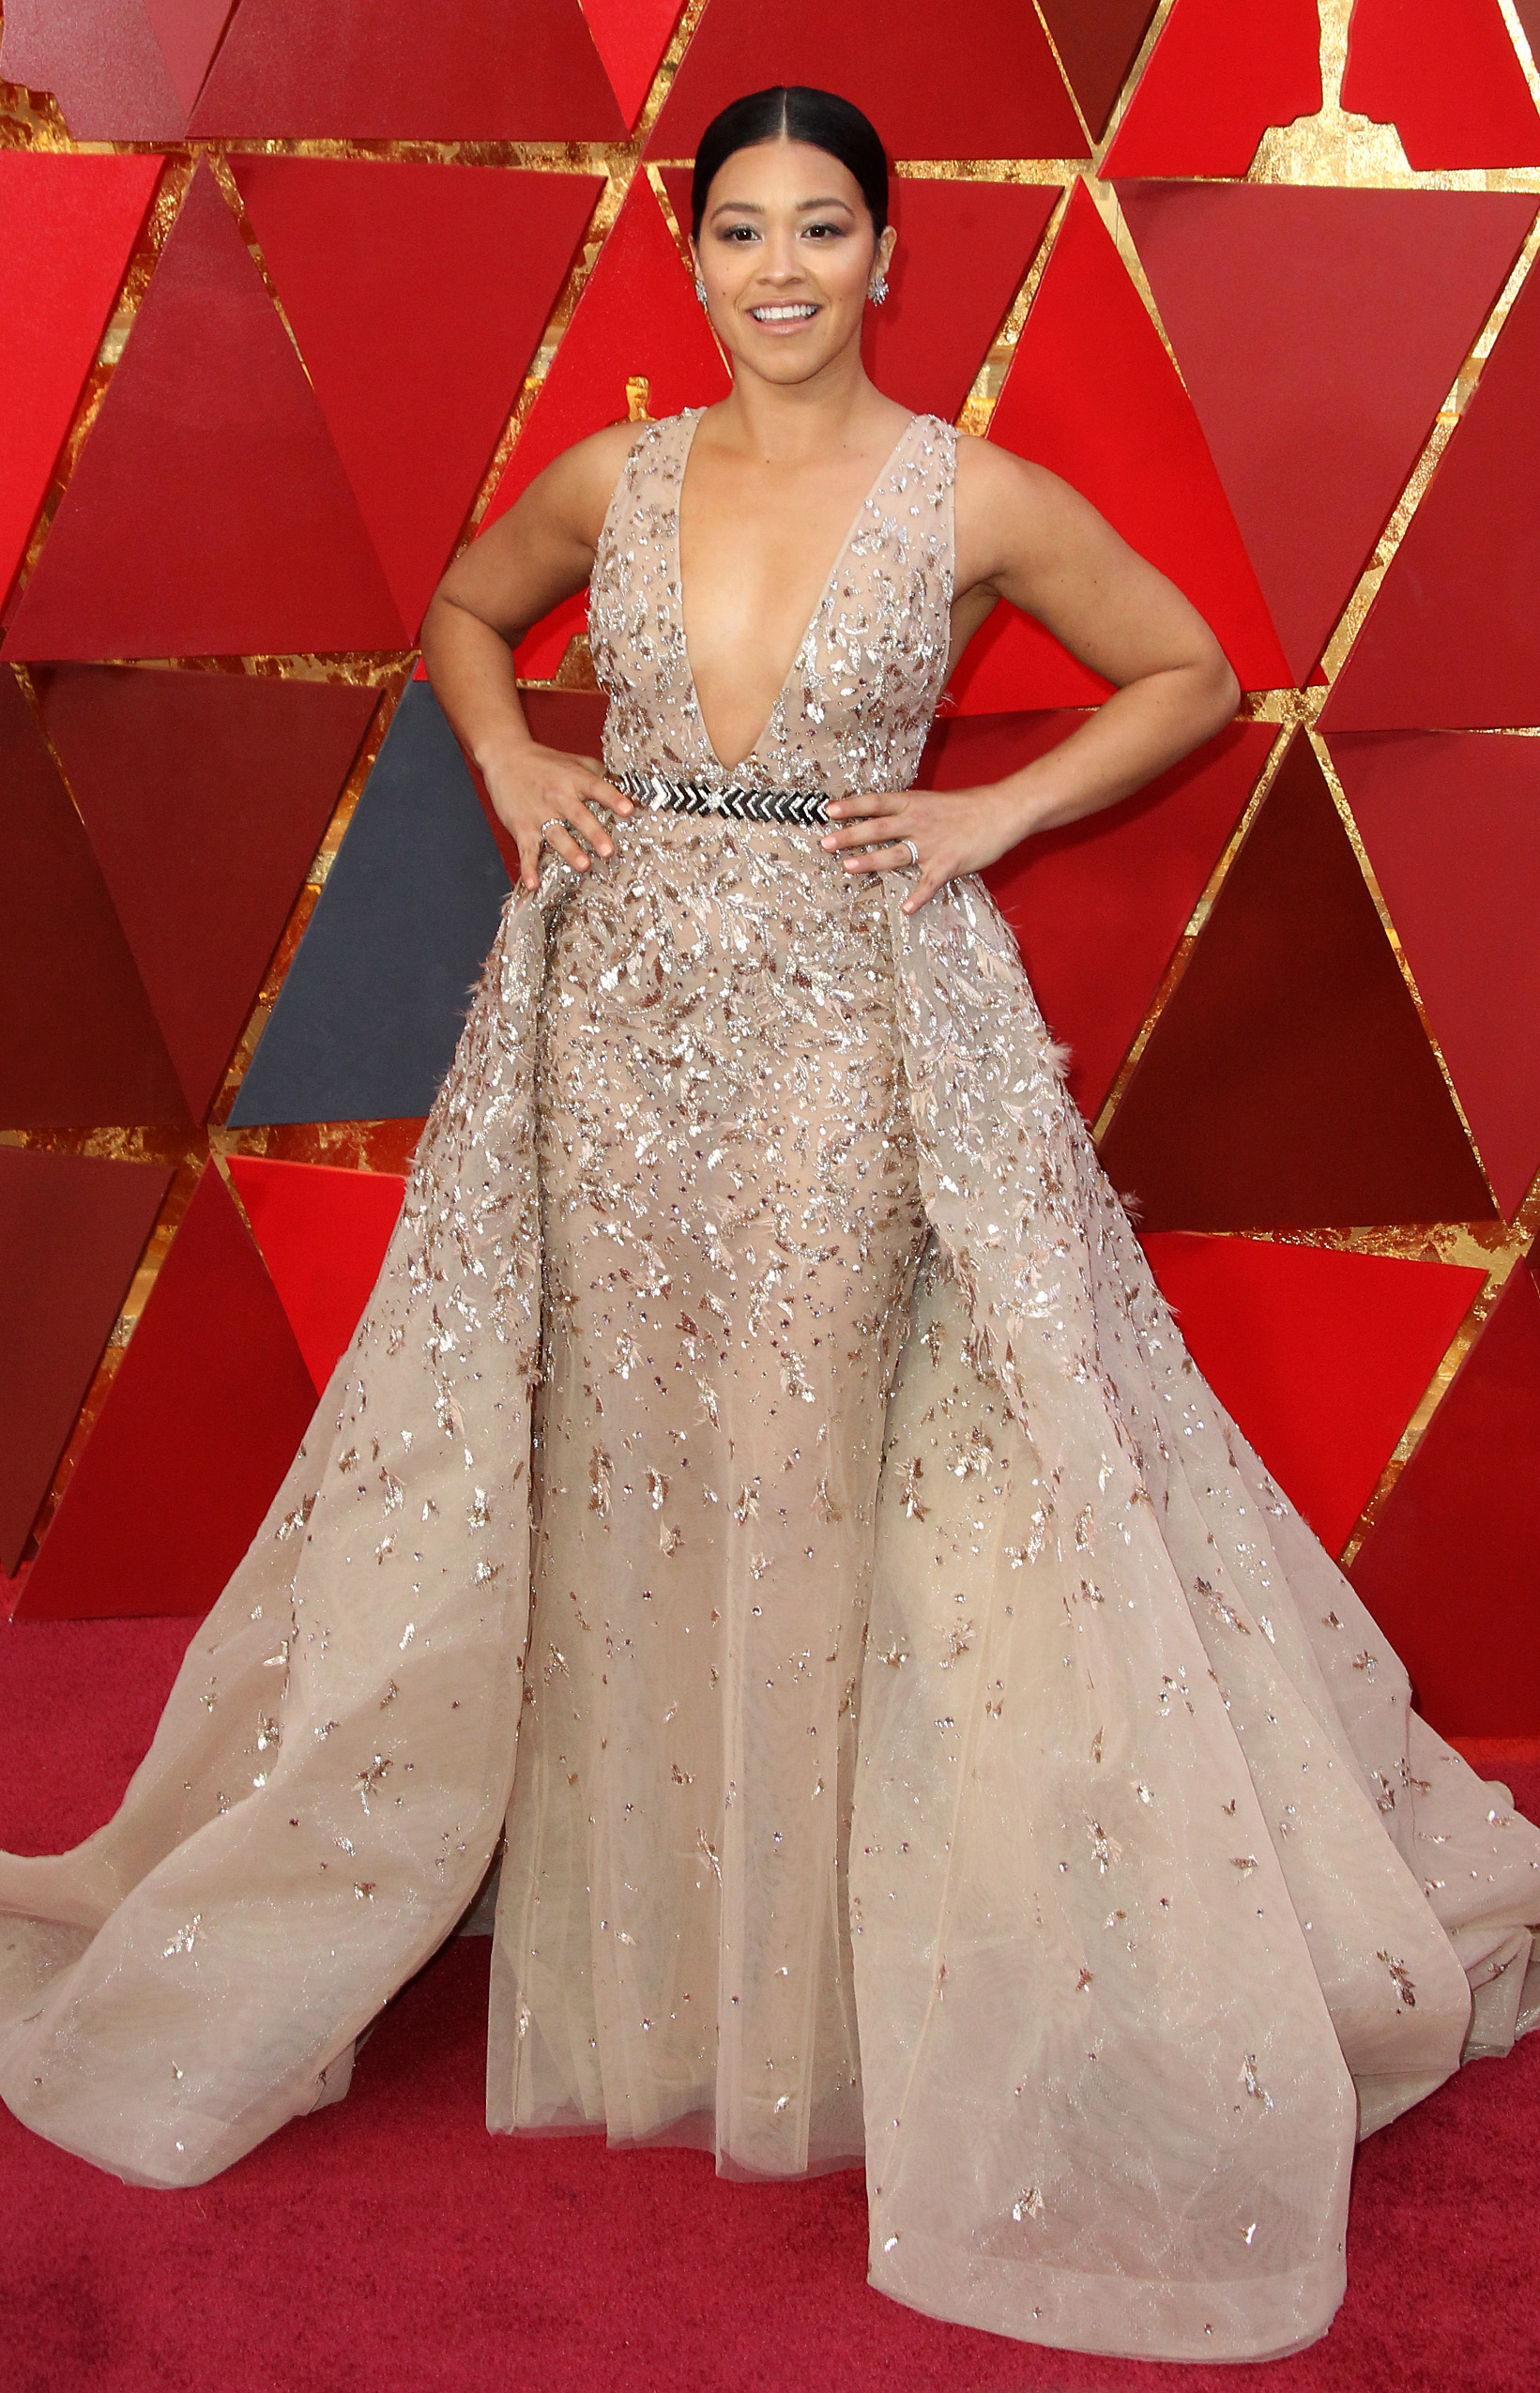 Gina Rodriguez{&amp;nbsp;}arrives at the 90th Annual Academy Awards (Oscars) held at the Dolby Theater in Hollywood, California. (Image: Adriana M. Barraza/WENN.com) <p></p>